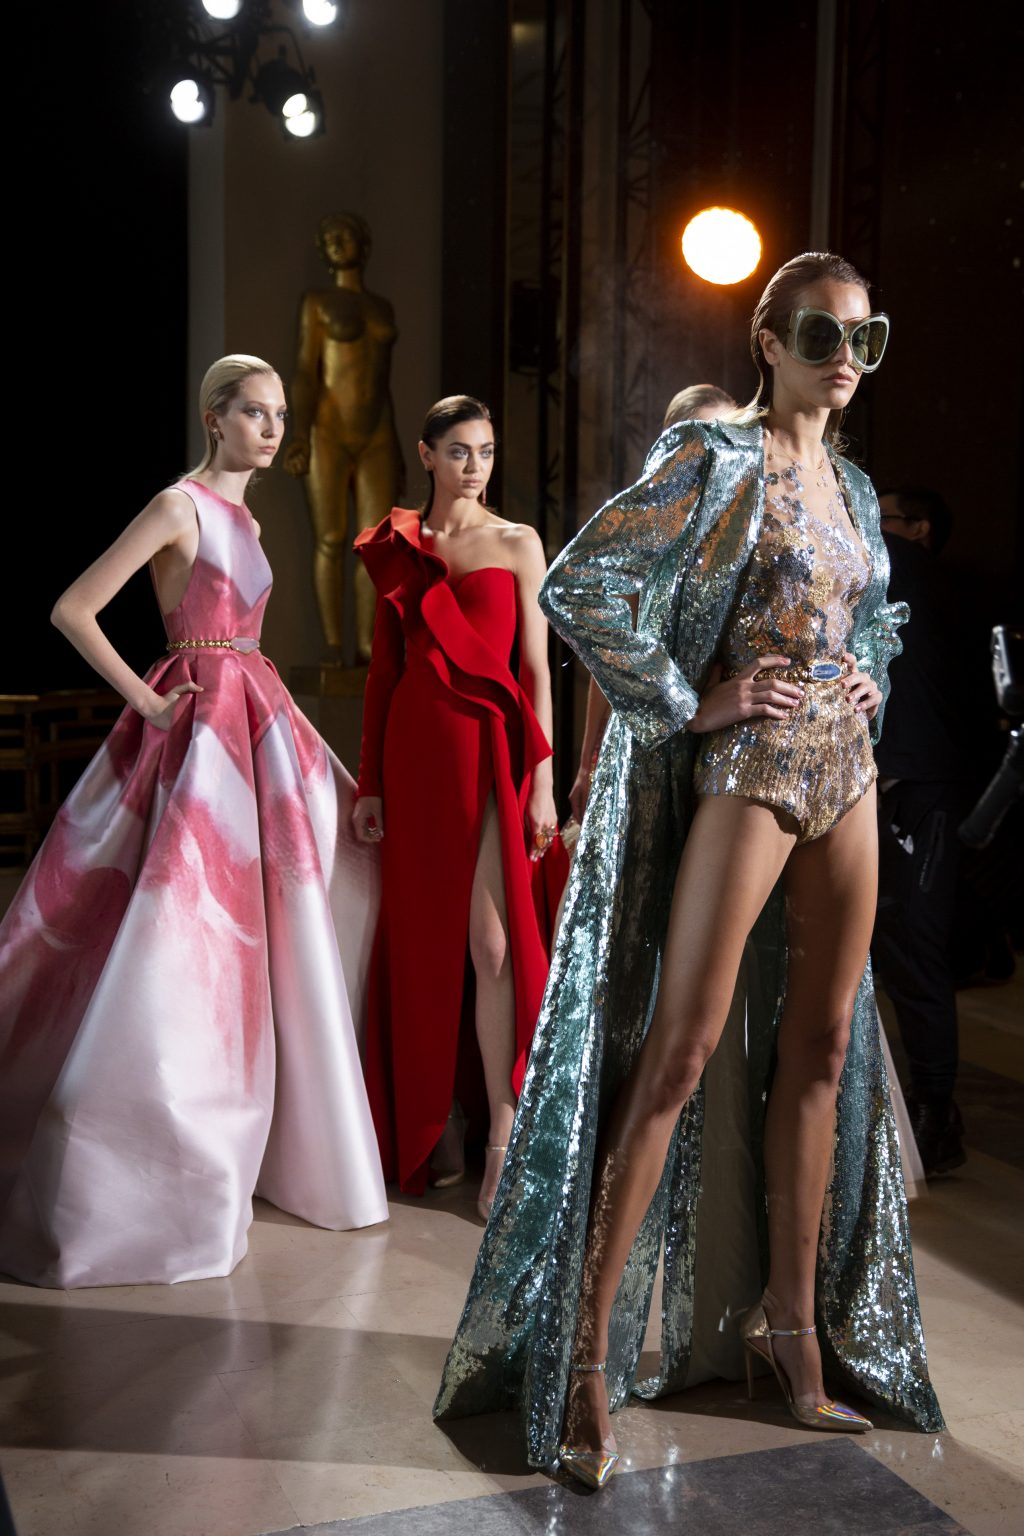 Elie Saab Pays Tribute to the Shores of Beirut for Spring 2019 Couture